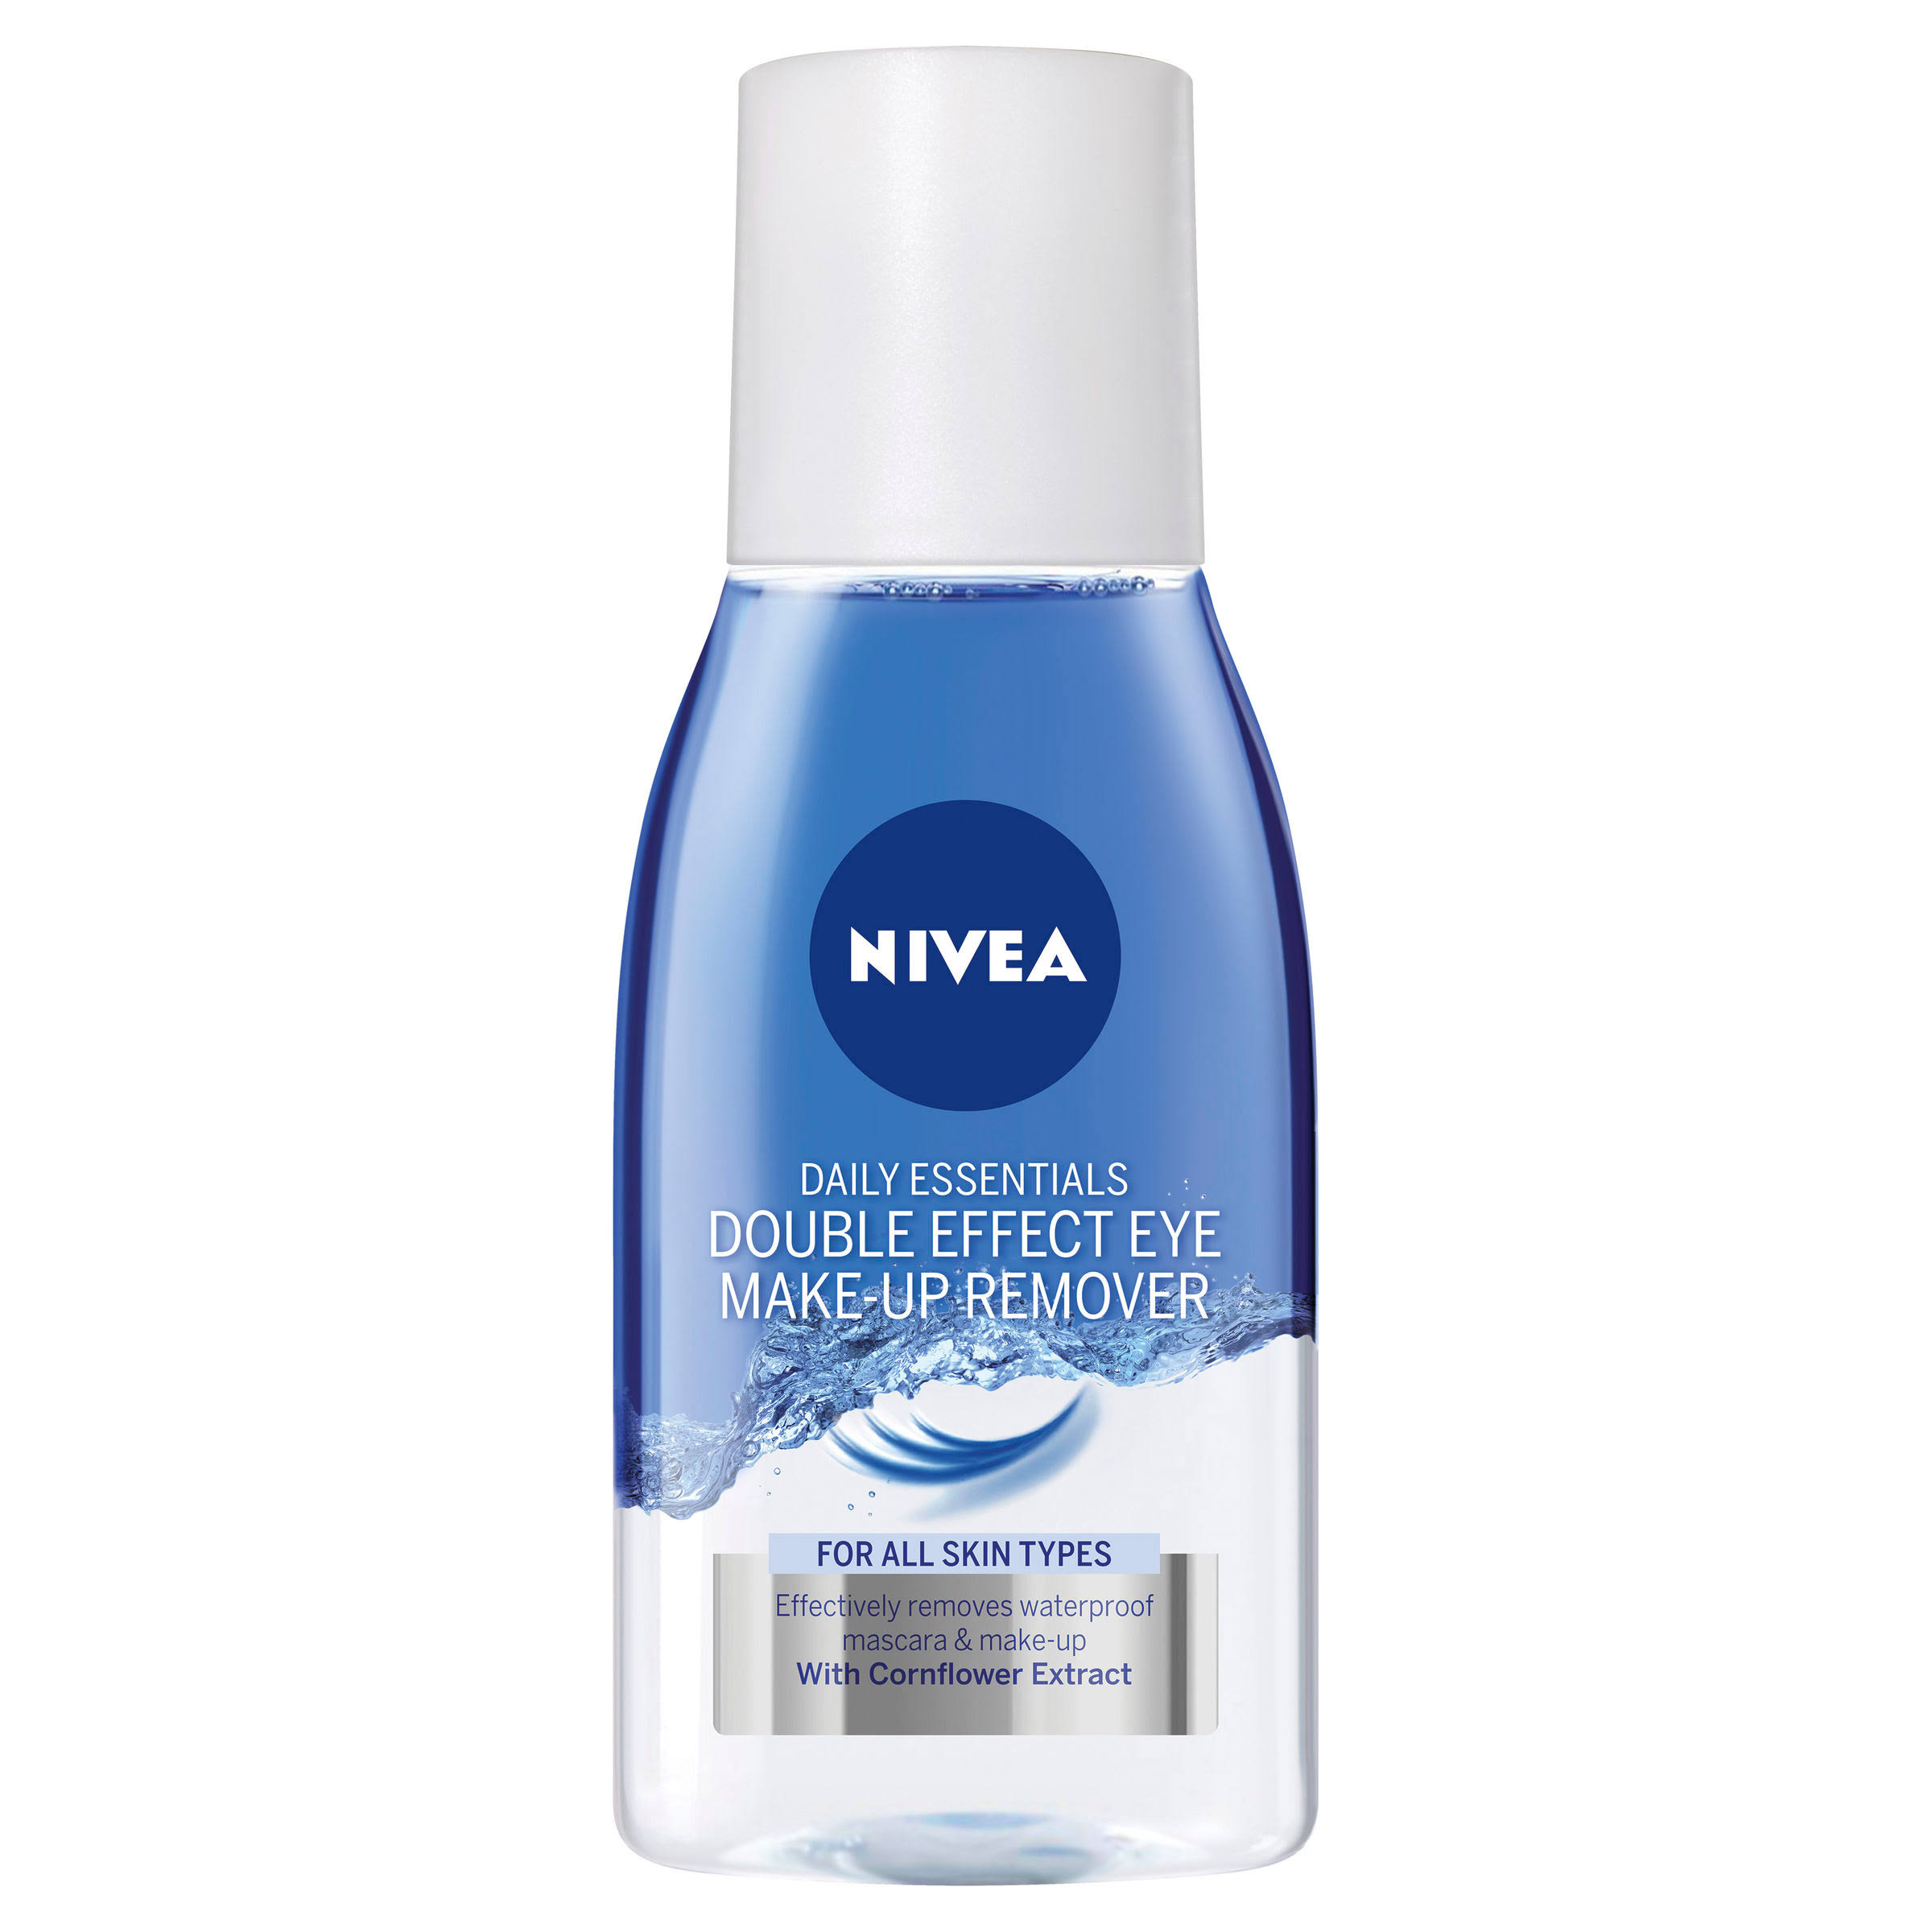 Nivea Daily Essentials Double Effect Eye Make Up Remover - 125ml